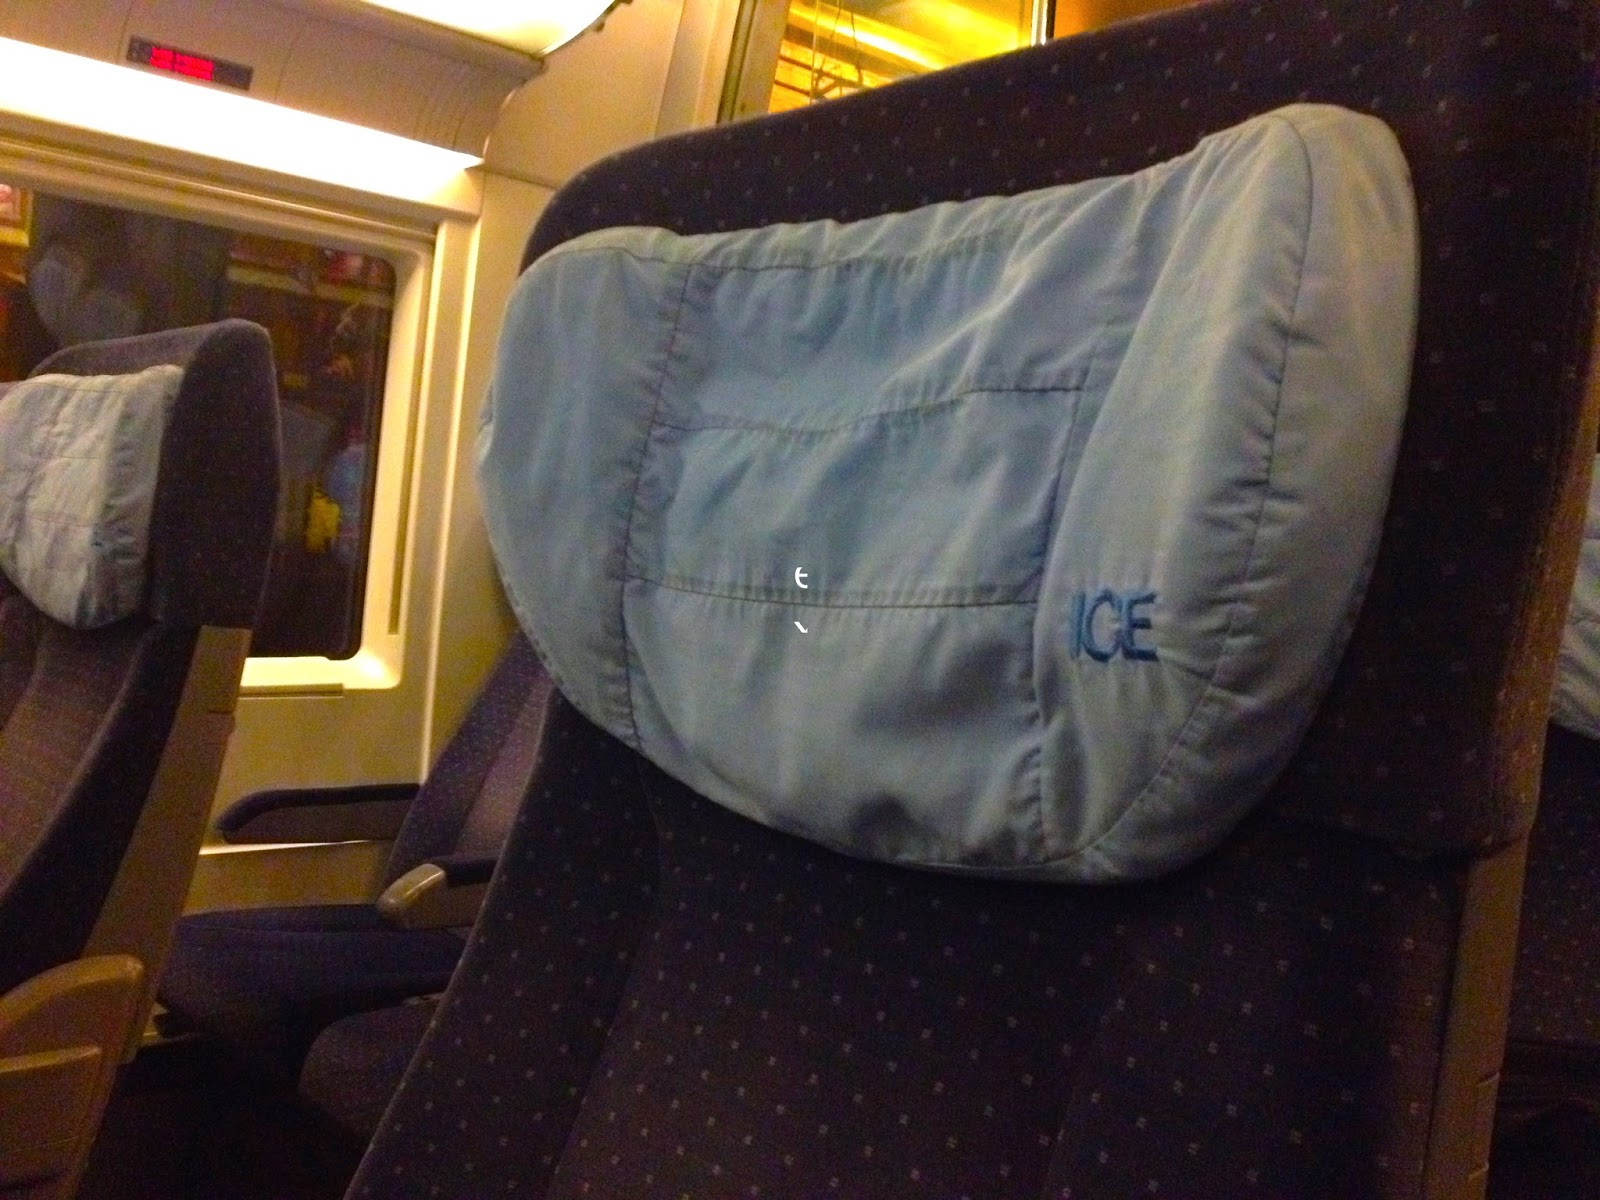 Naik Kereta ICE dan City Night Line dari Amsterdam ke Berlin-1 seat 2nd class ice3